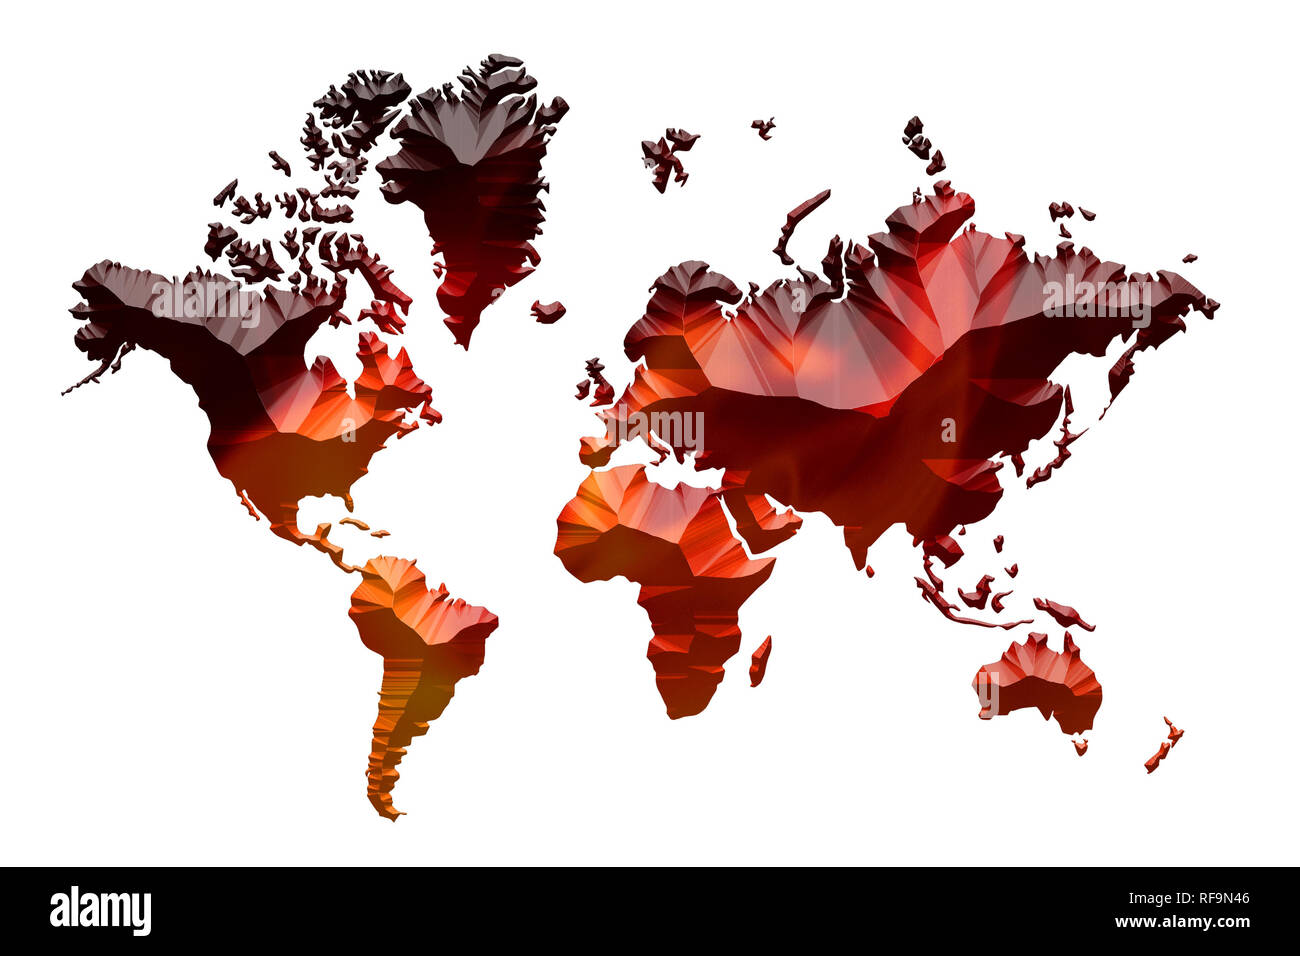 red fire burning in the shape of world map on white backgound with plenty copy space for the text - Stock Image